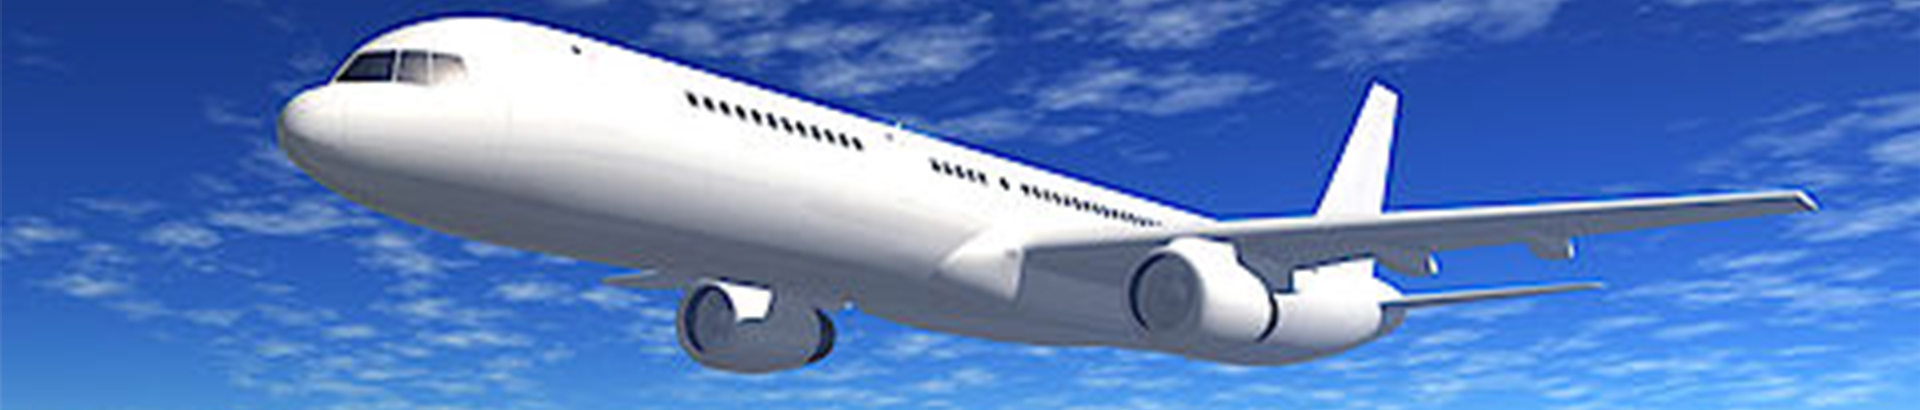 Trends in the Aerospace Manufacturing Industry in the Next 20 Years